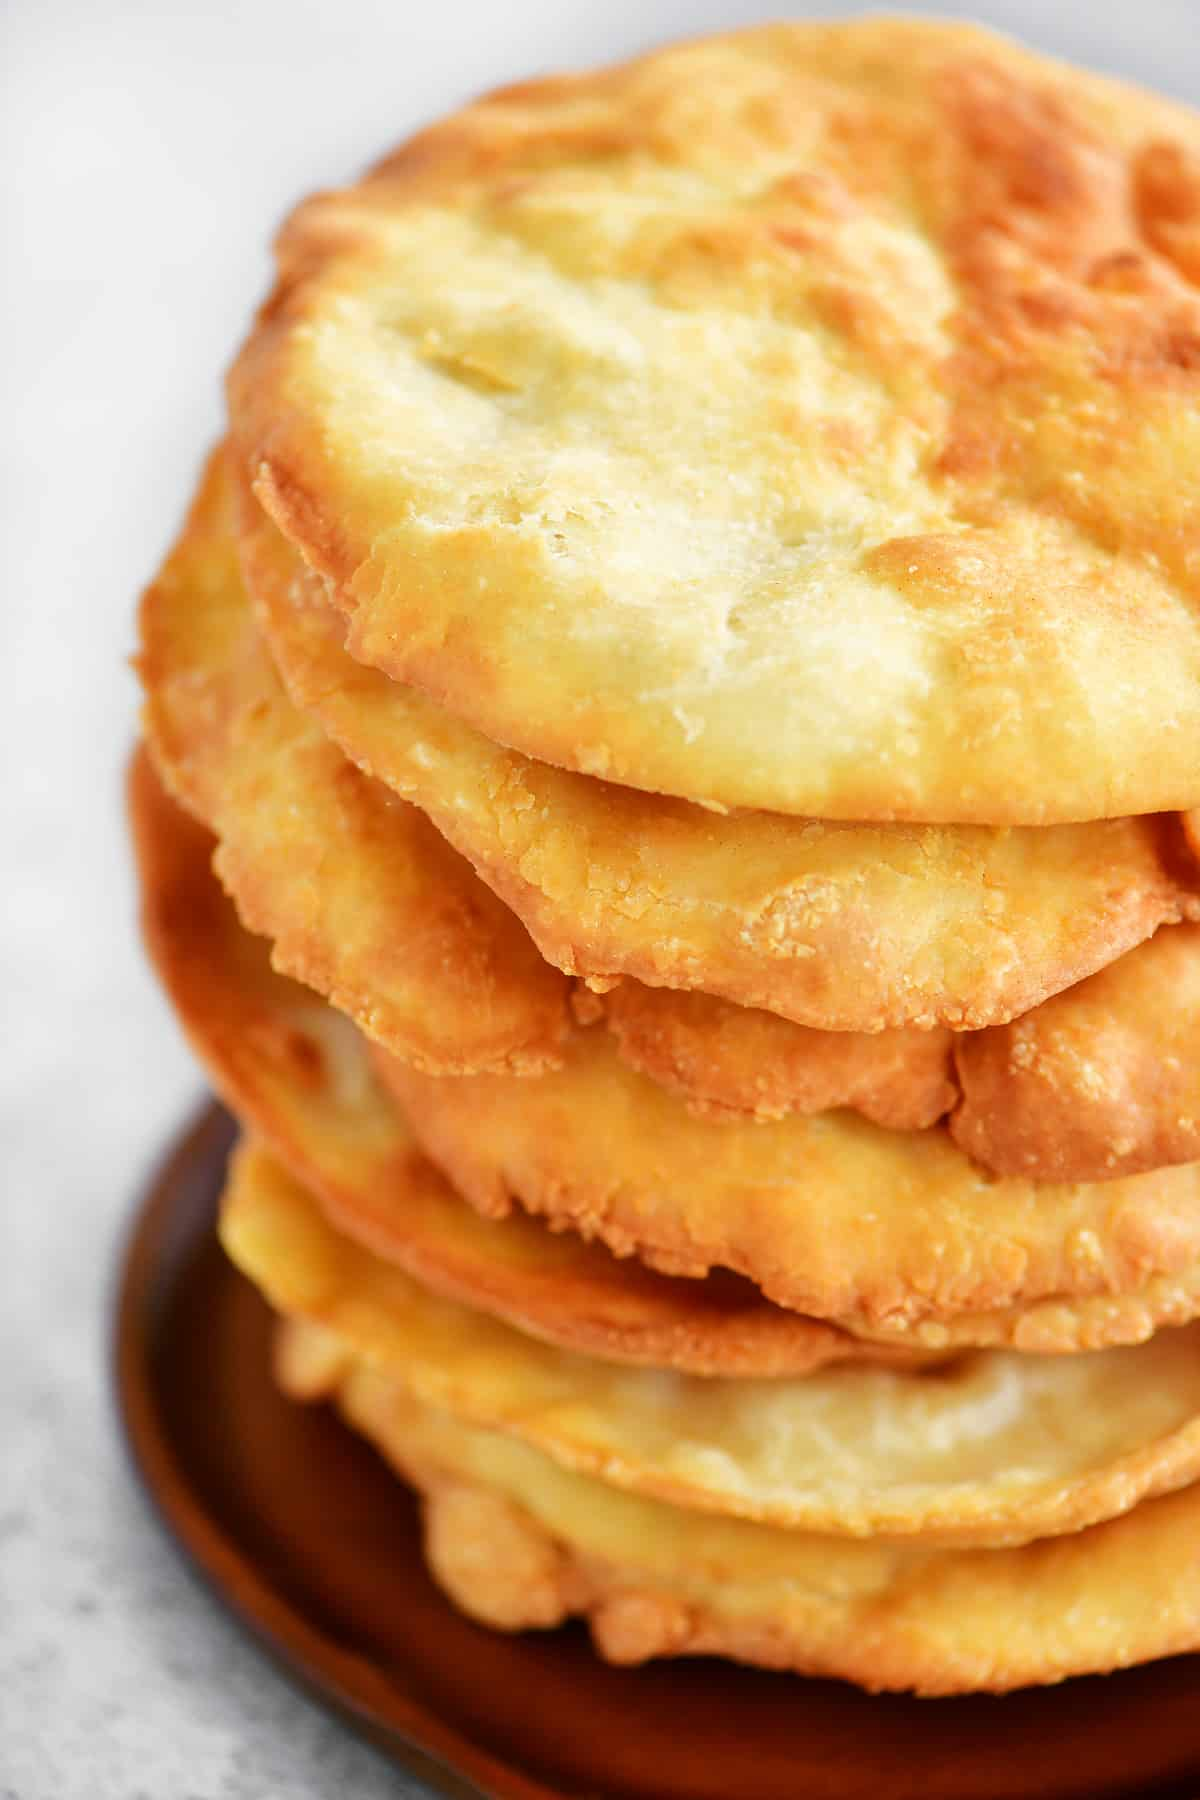 stack of fry bread on a wooden plate